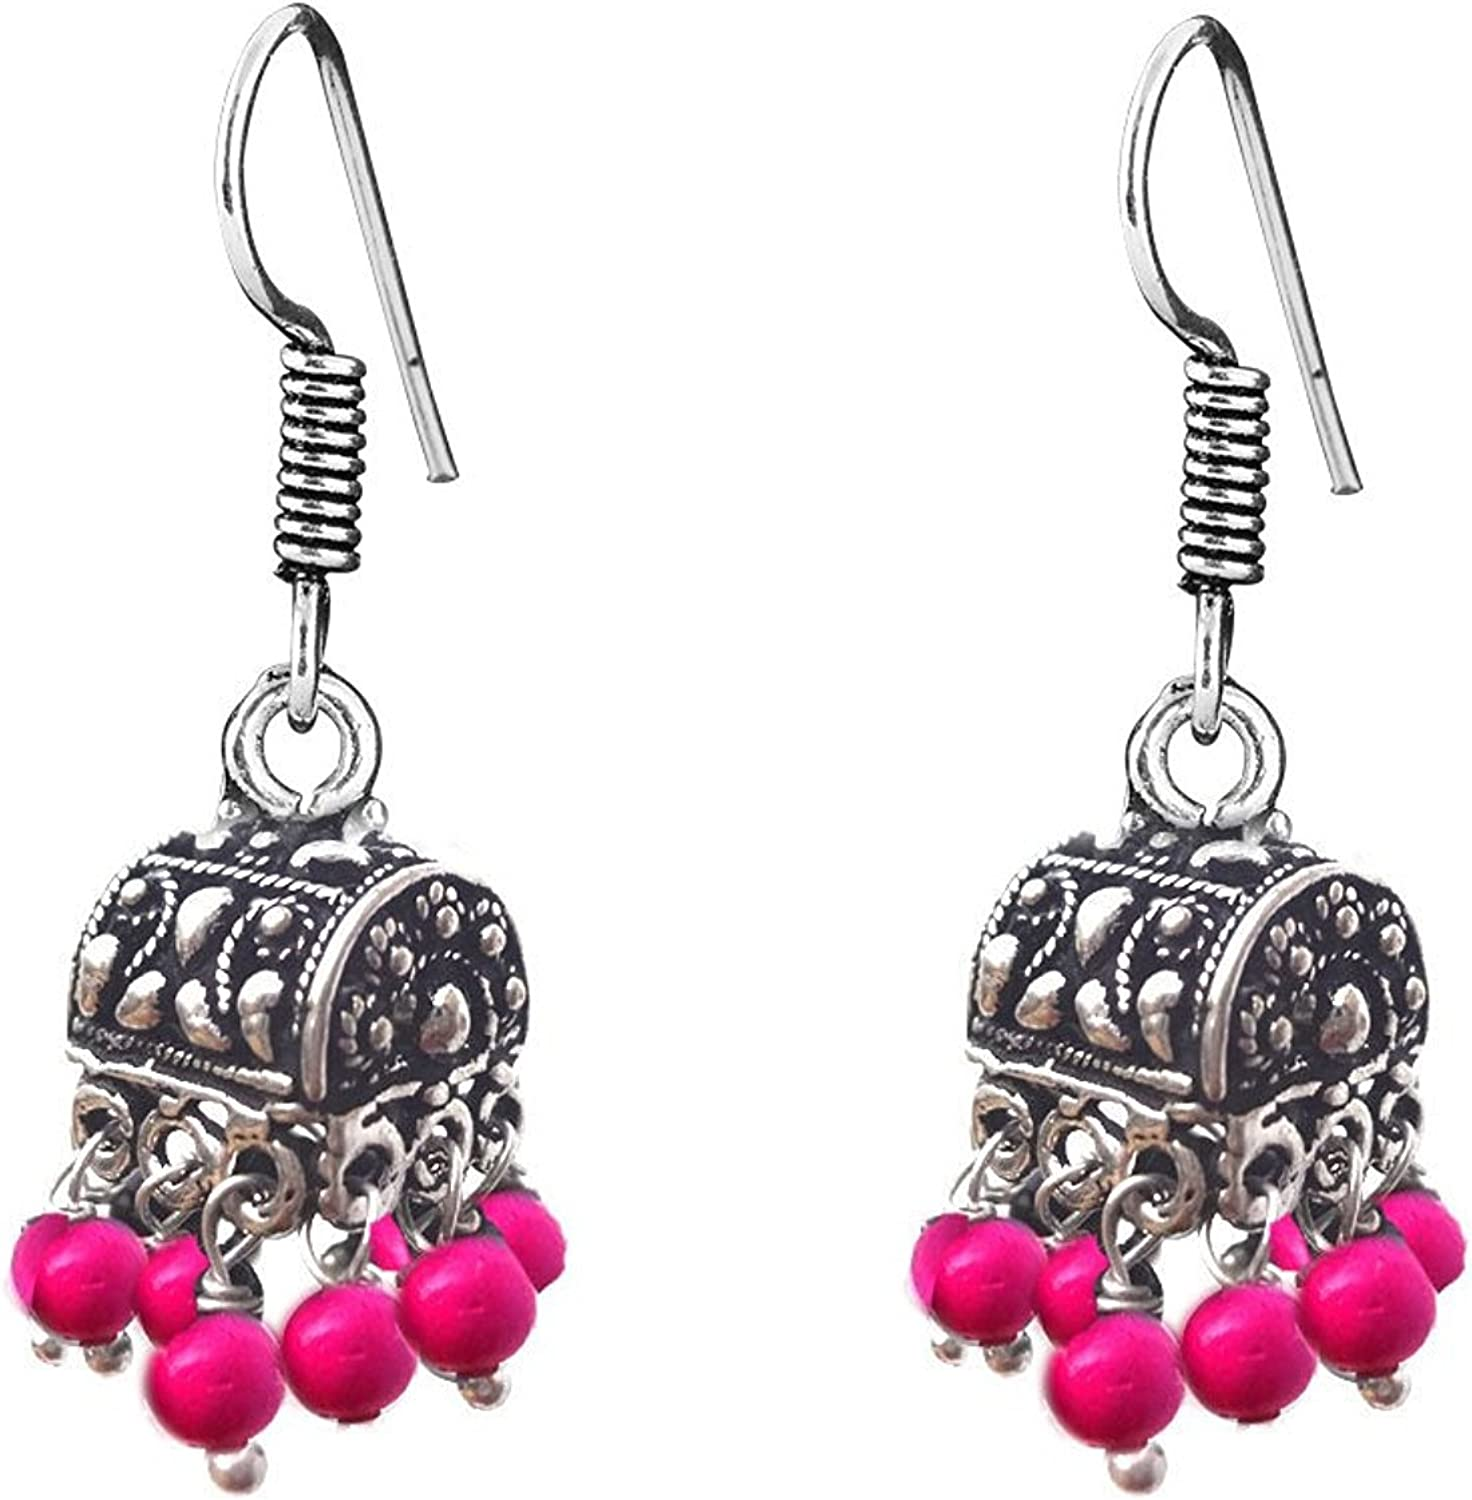 Subharpit Traditional Red Color Dangle Indian Earrings Jewelry for Girls and Women